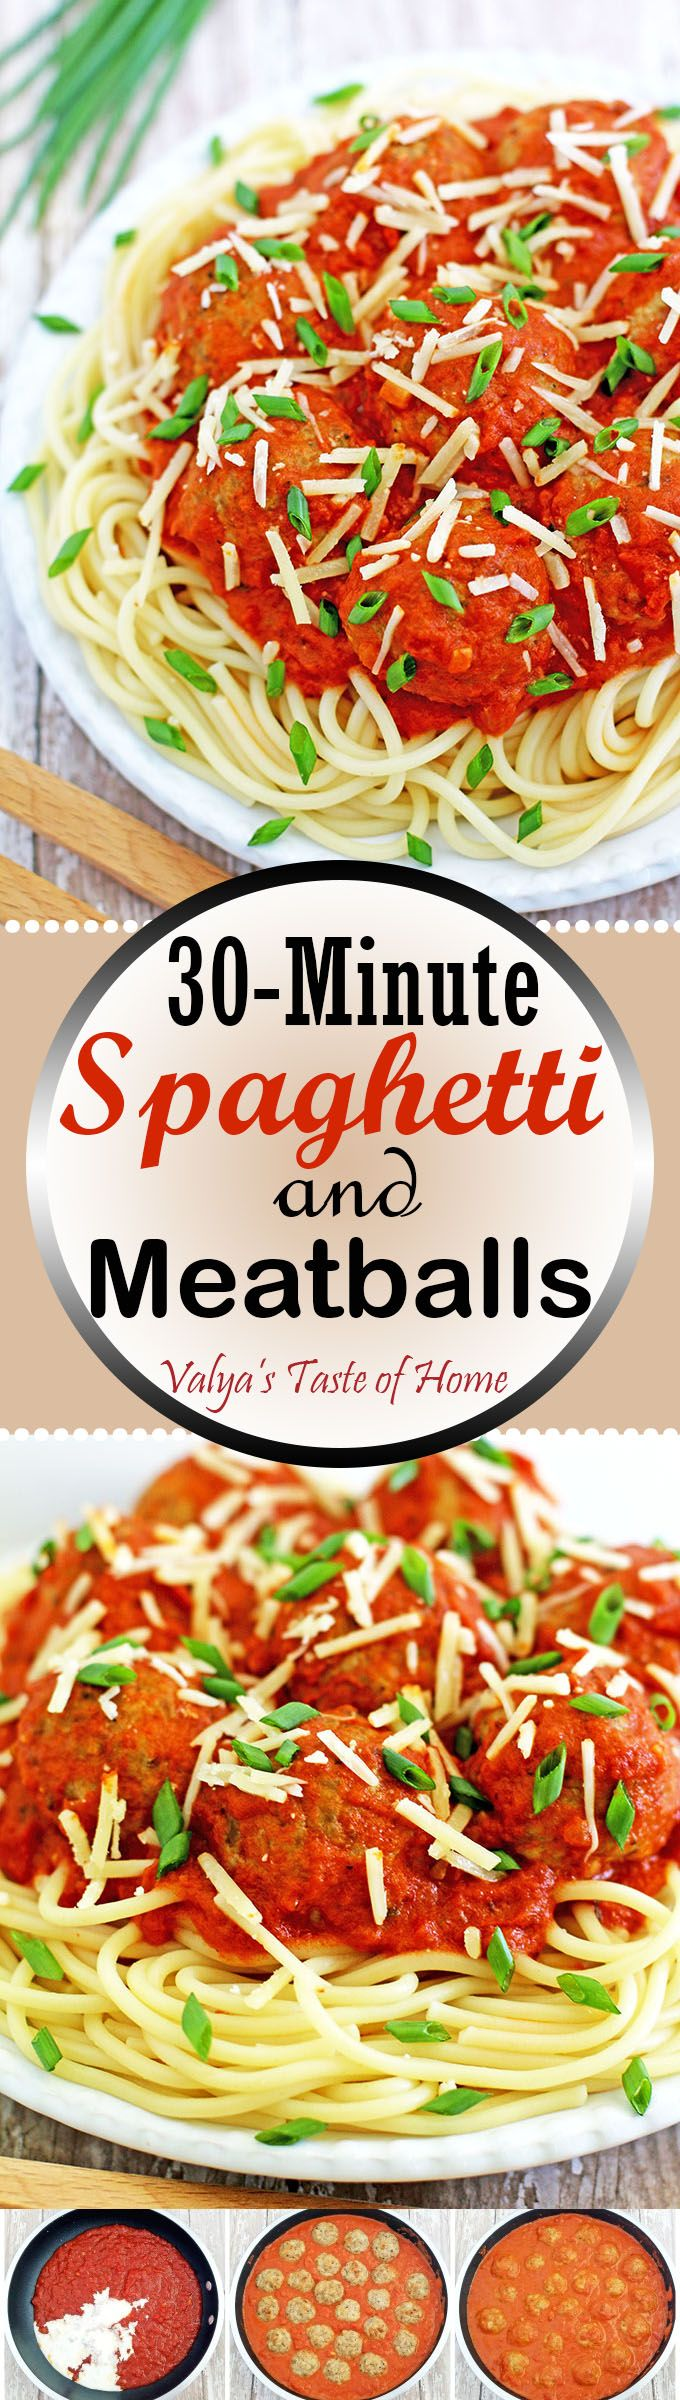 I've never seen a kid that doesn't love 30-Minute Spaghetti and Meatballs Recipe. And we, as moms, love to see them appetizingly devour every bit of this dish. This is one of those quick solution meals for any busy, pressure-packed, limited-time days, as well. Spin some Caesar salad, toast some garlic bread, or thaw and bake ready-made bread sticks and voila!